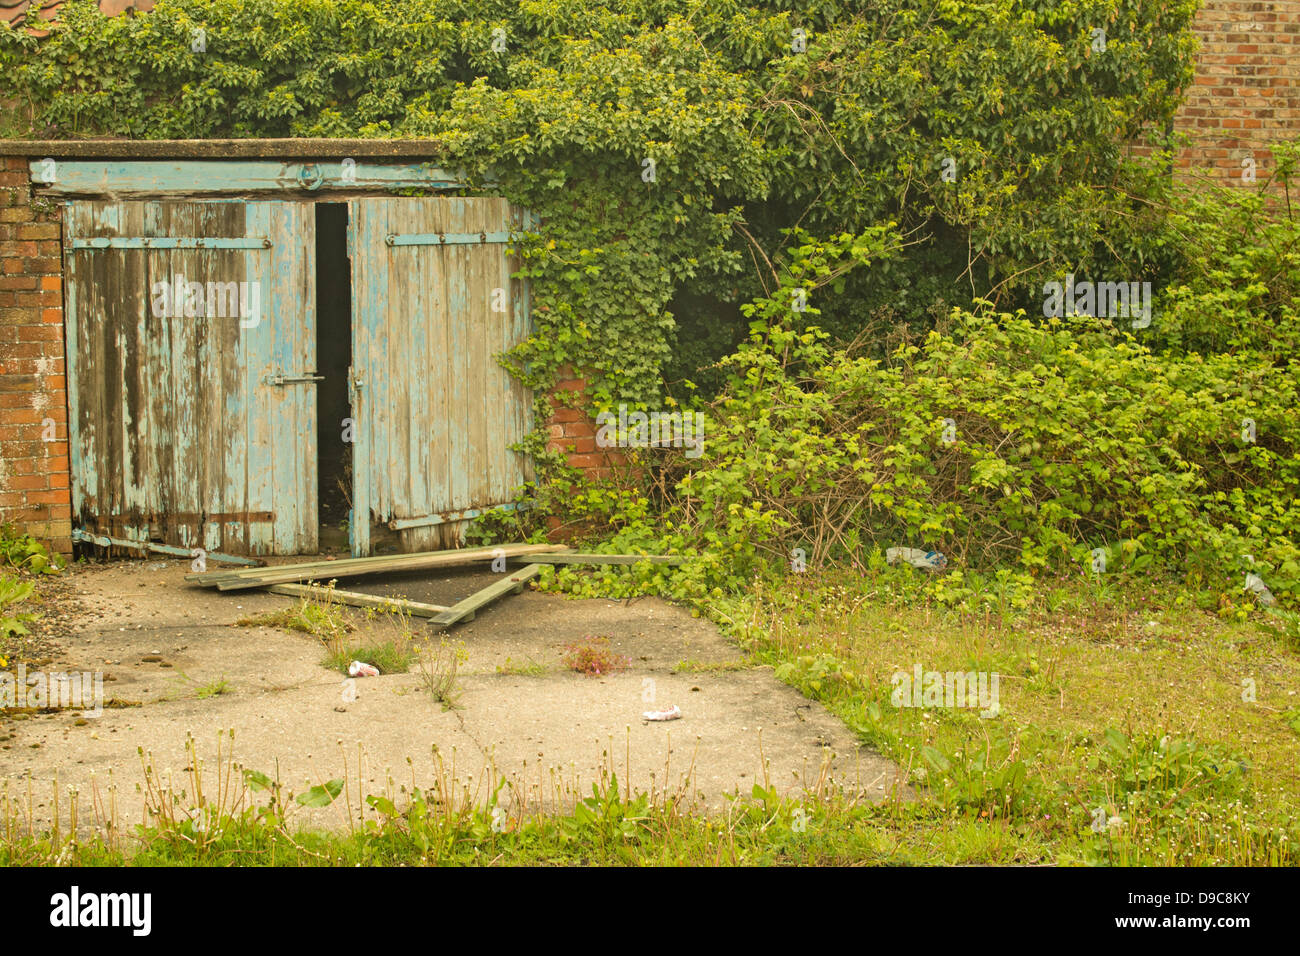 Wooden garages in nottinghamshire - Lock Up Garage Or Shed Overgrown With Bushes And Weeds Wooden Doors Starting To